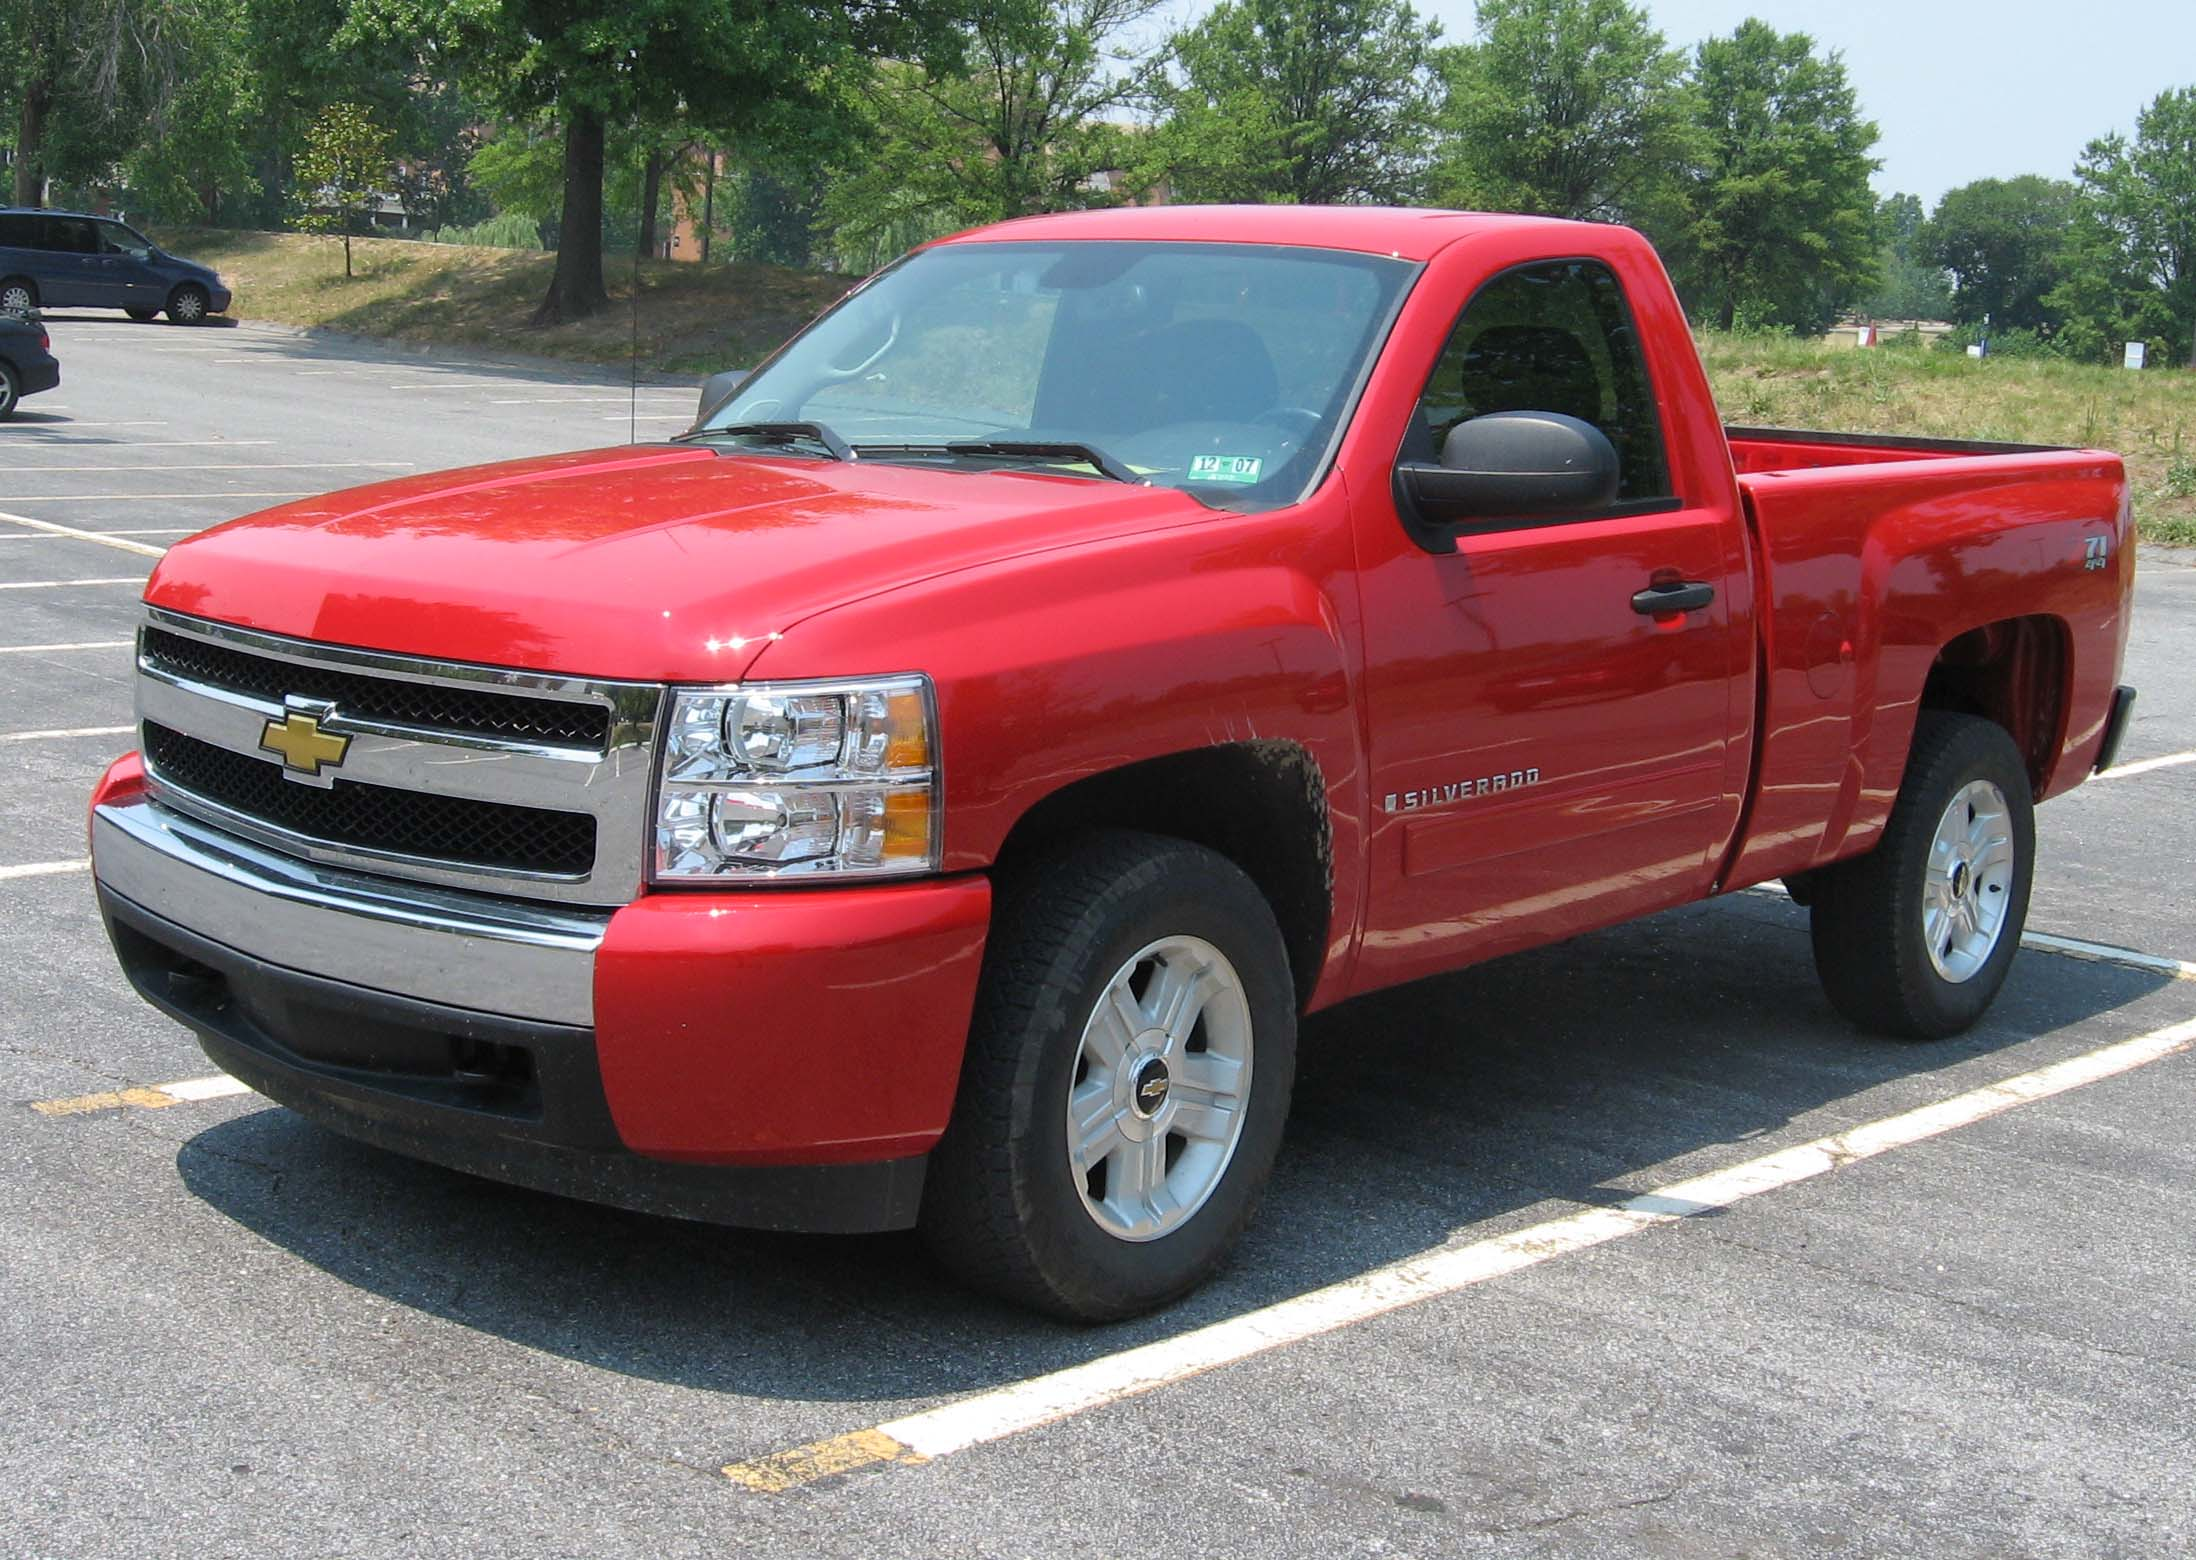 Chevy Silverado Single Cab 2007 >> File:2007-Chevrolet-Silverado-regcab.jpg - Wikimedia Commons